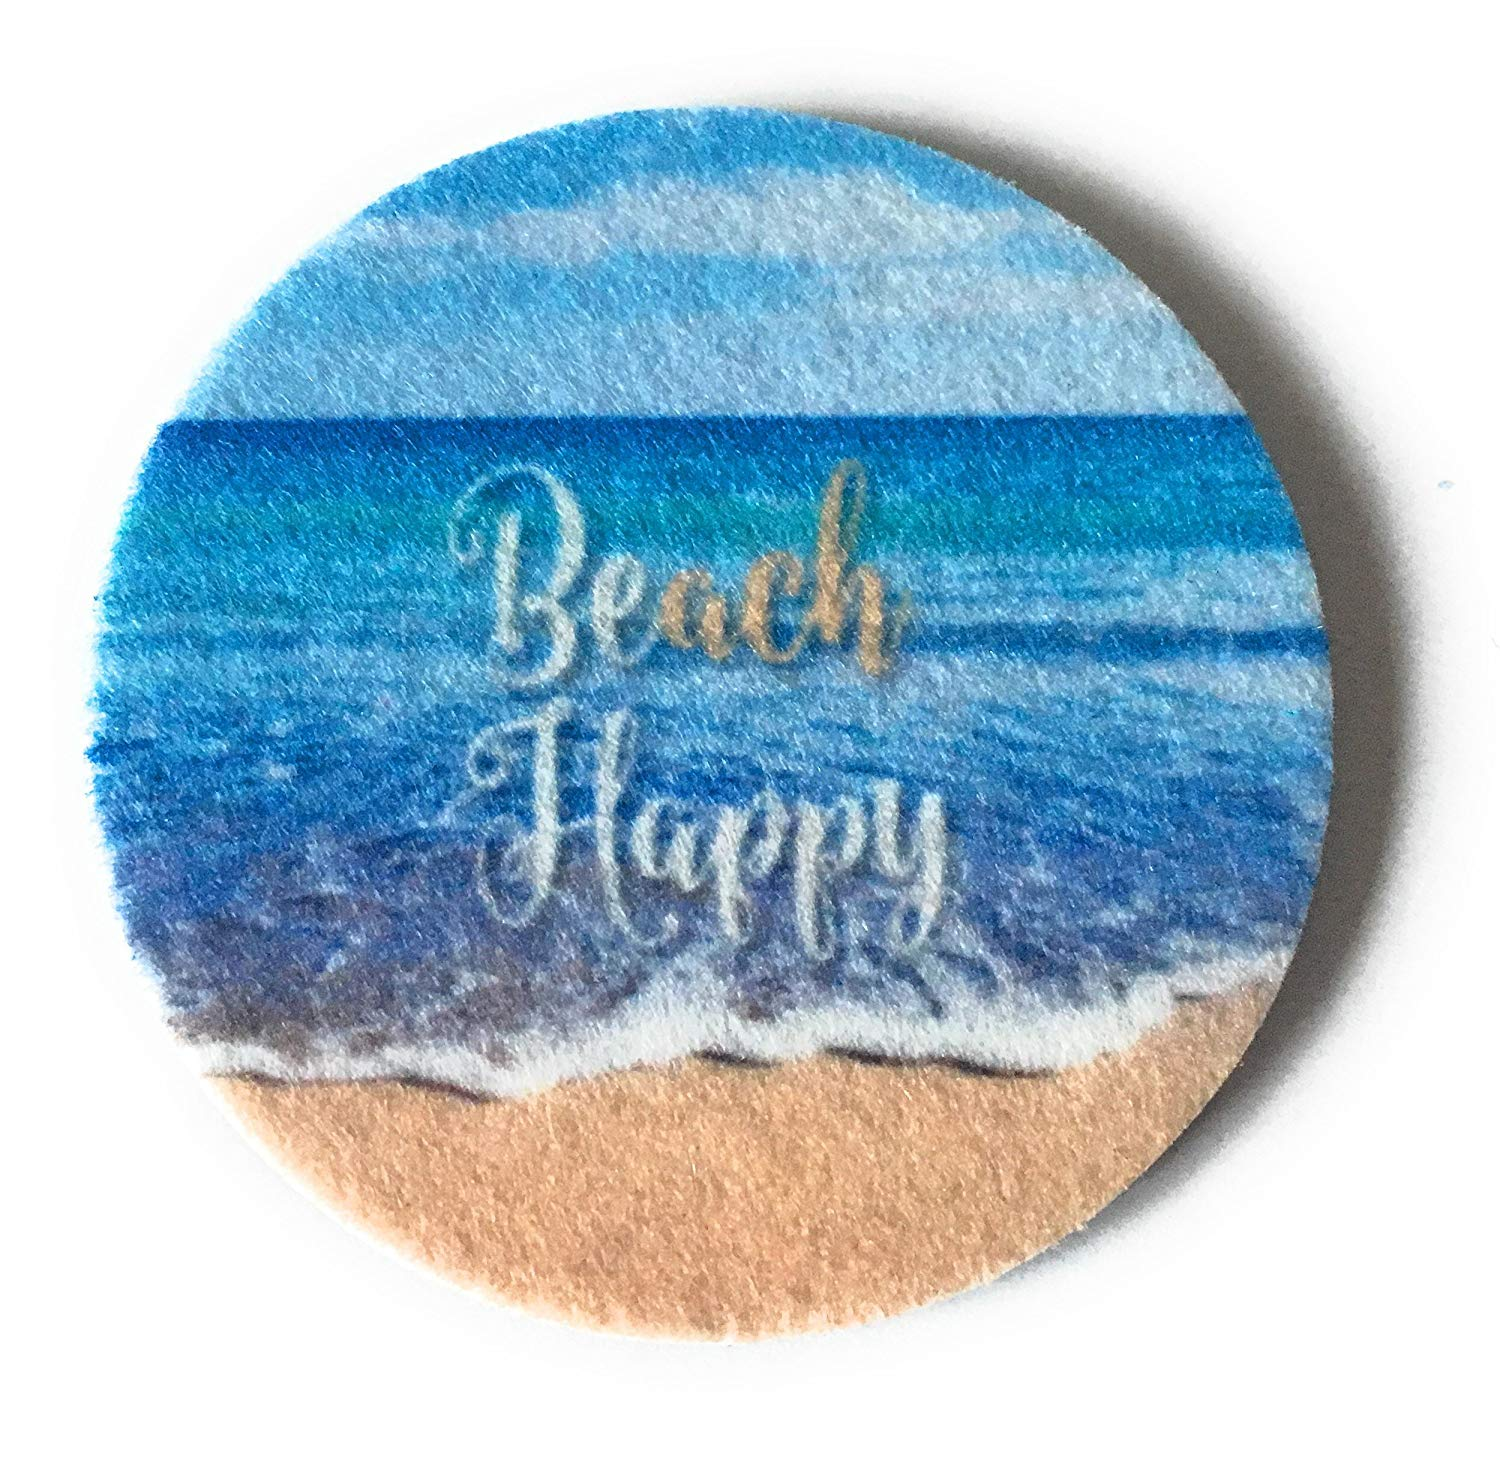 Beach Happy Car Coasters - Set of two super absorbent car coasters for your cars cup holder - Beach Cup Holder Coasters